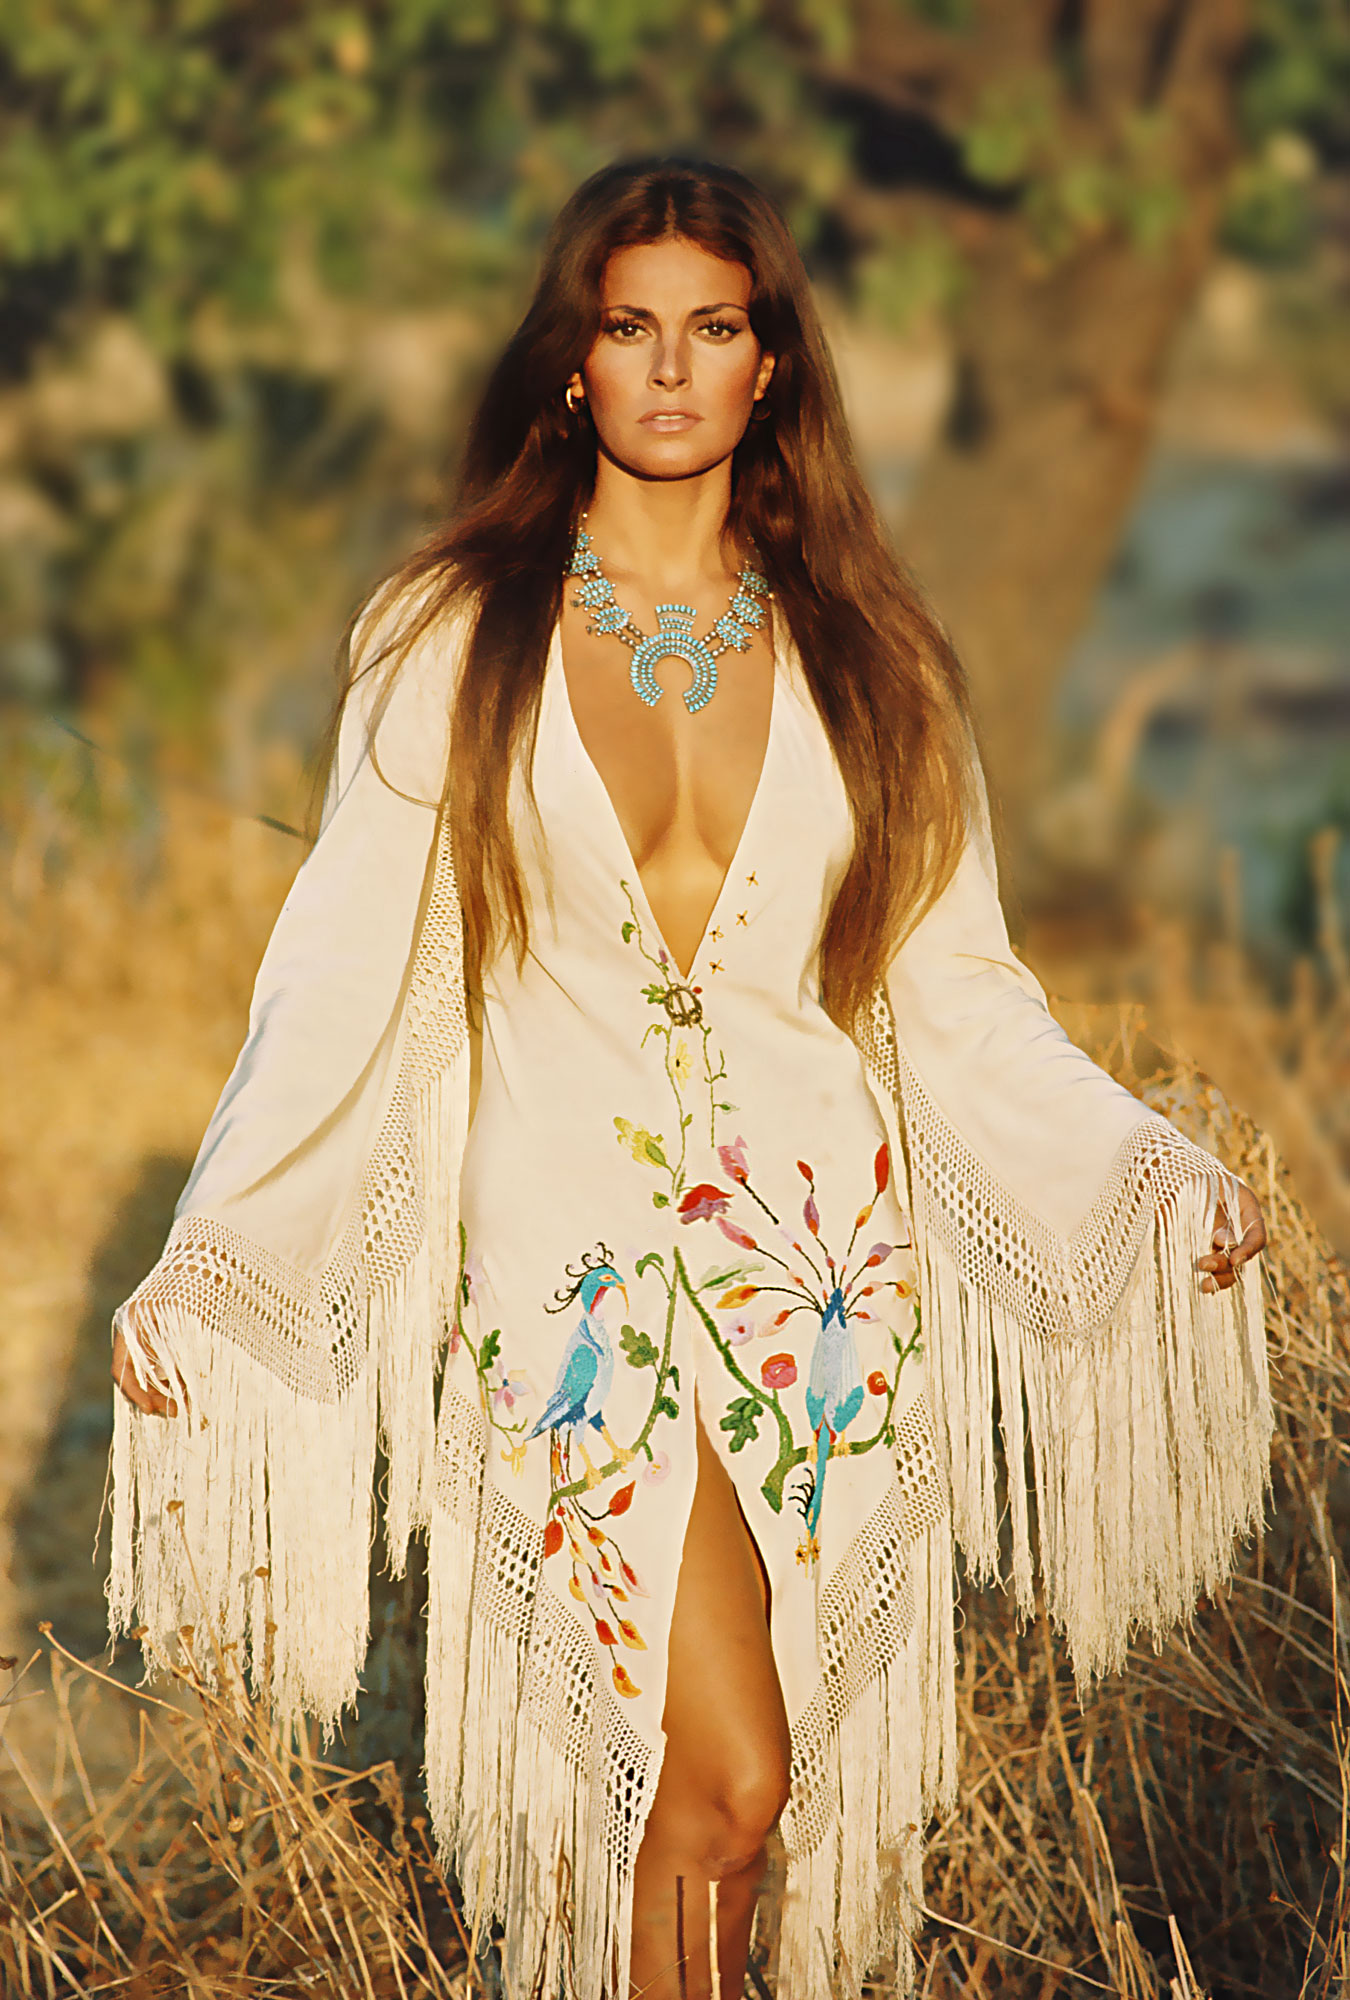 Raquel Welch Turquoise Jewelry